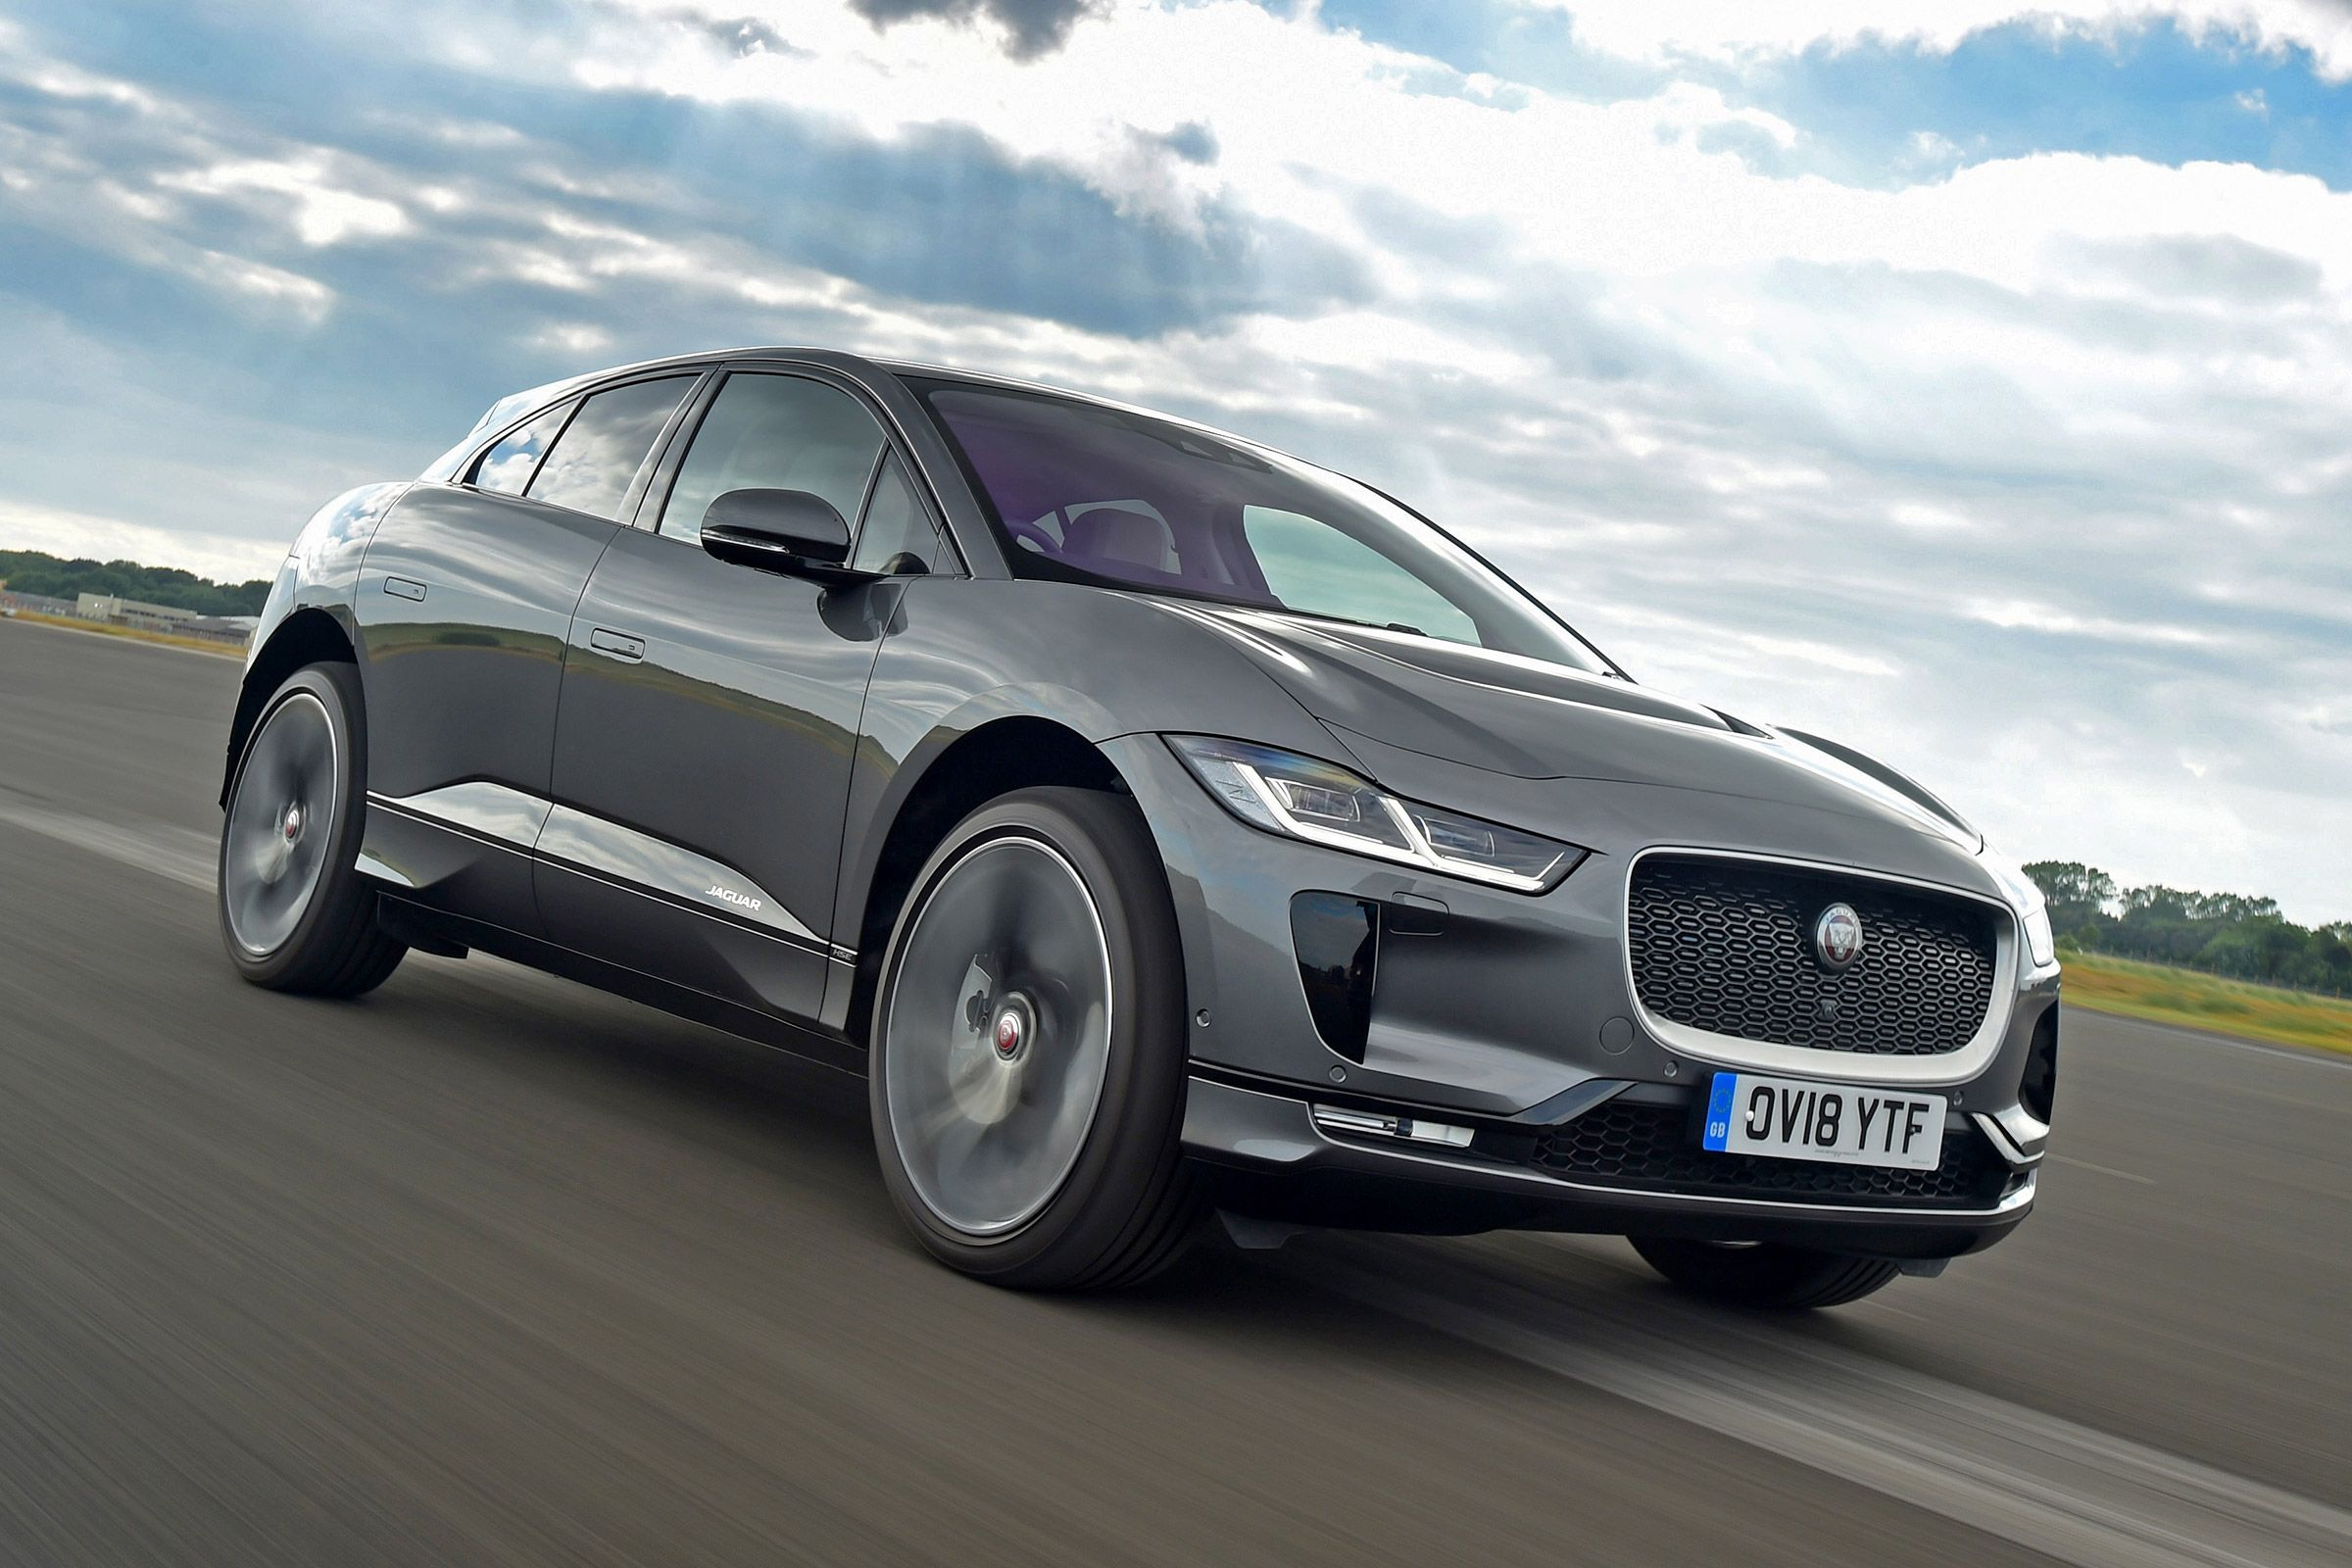 Jaguar I Pace Earns A Five Star Review The I Pace Is The Best And Most Exciting Electric Vehicle Currently On Sale And Repr Jaguar Top Luxury Cars Jaguar Car